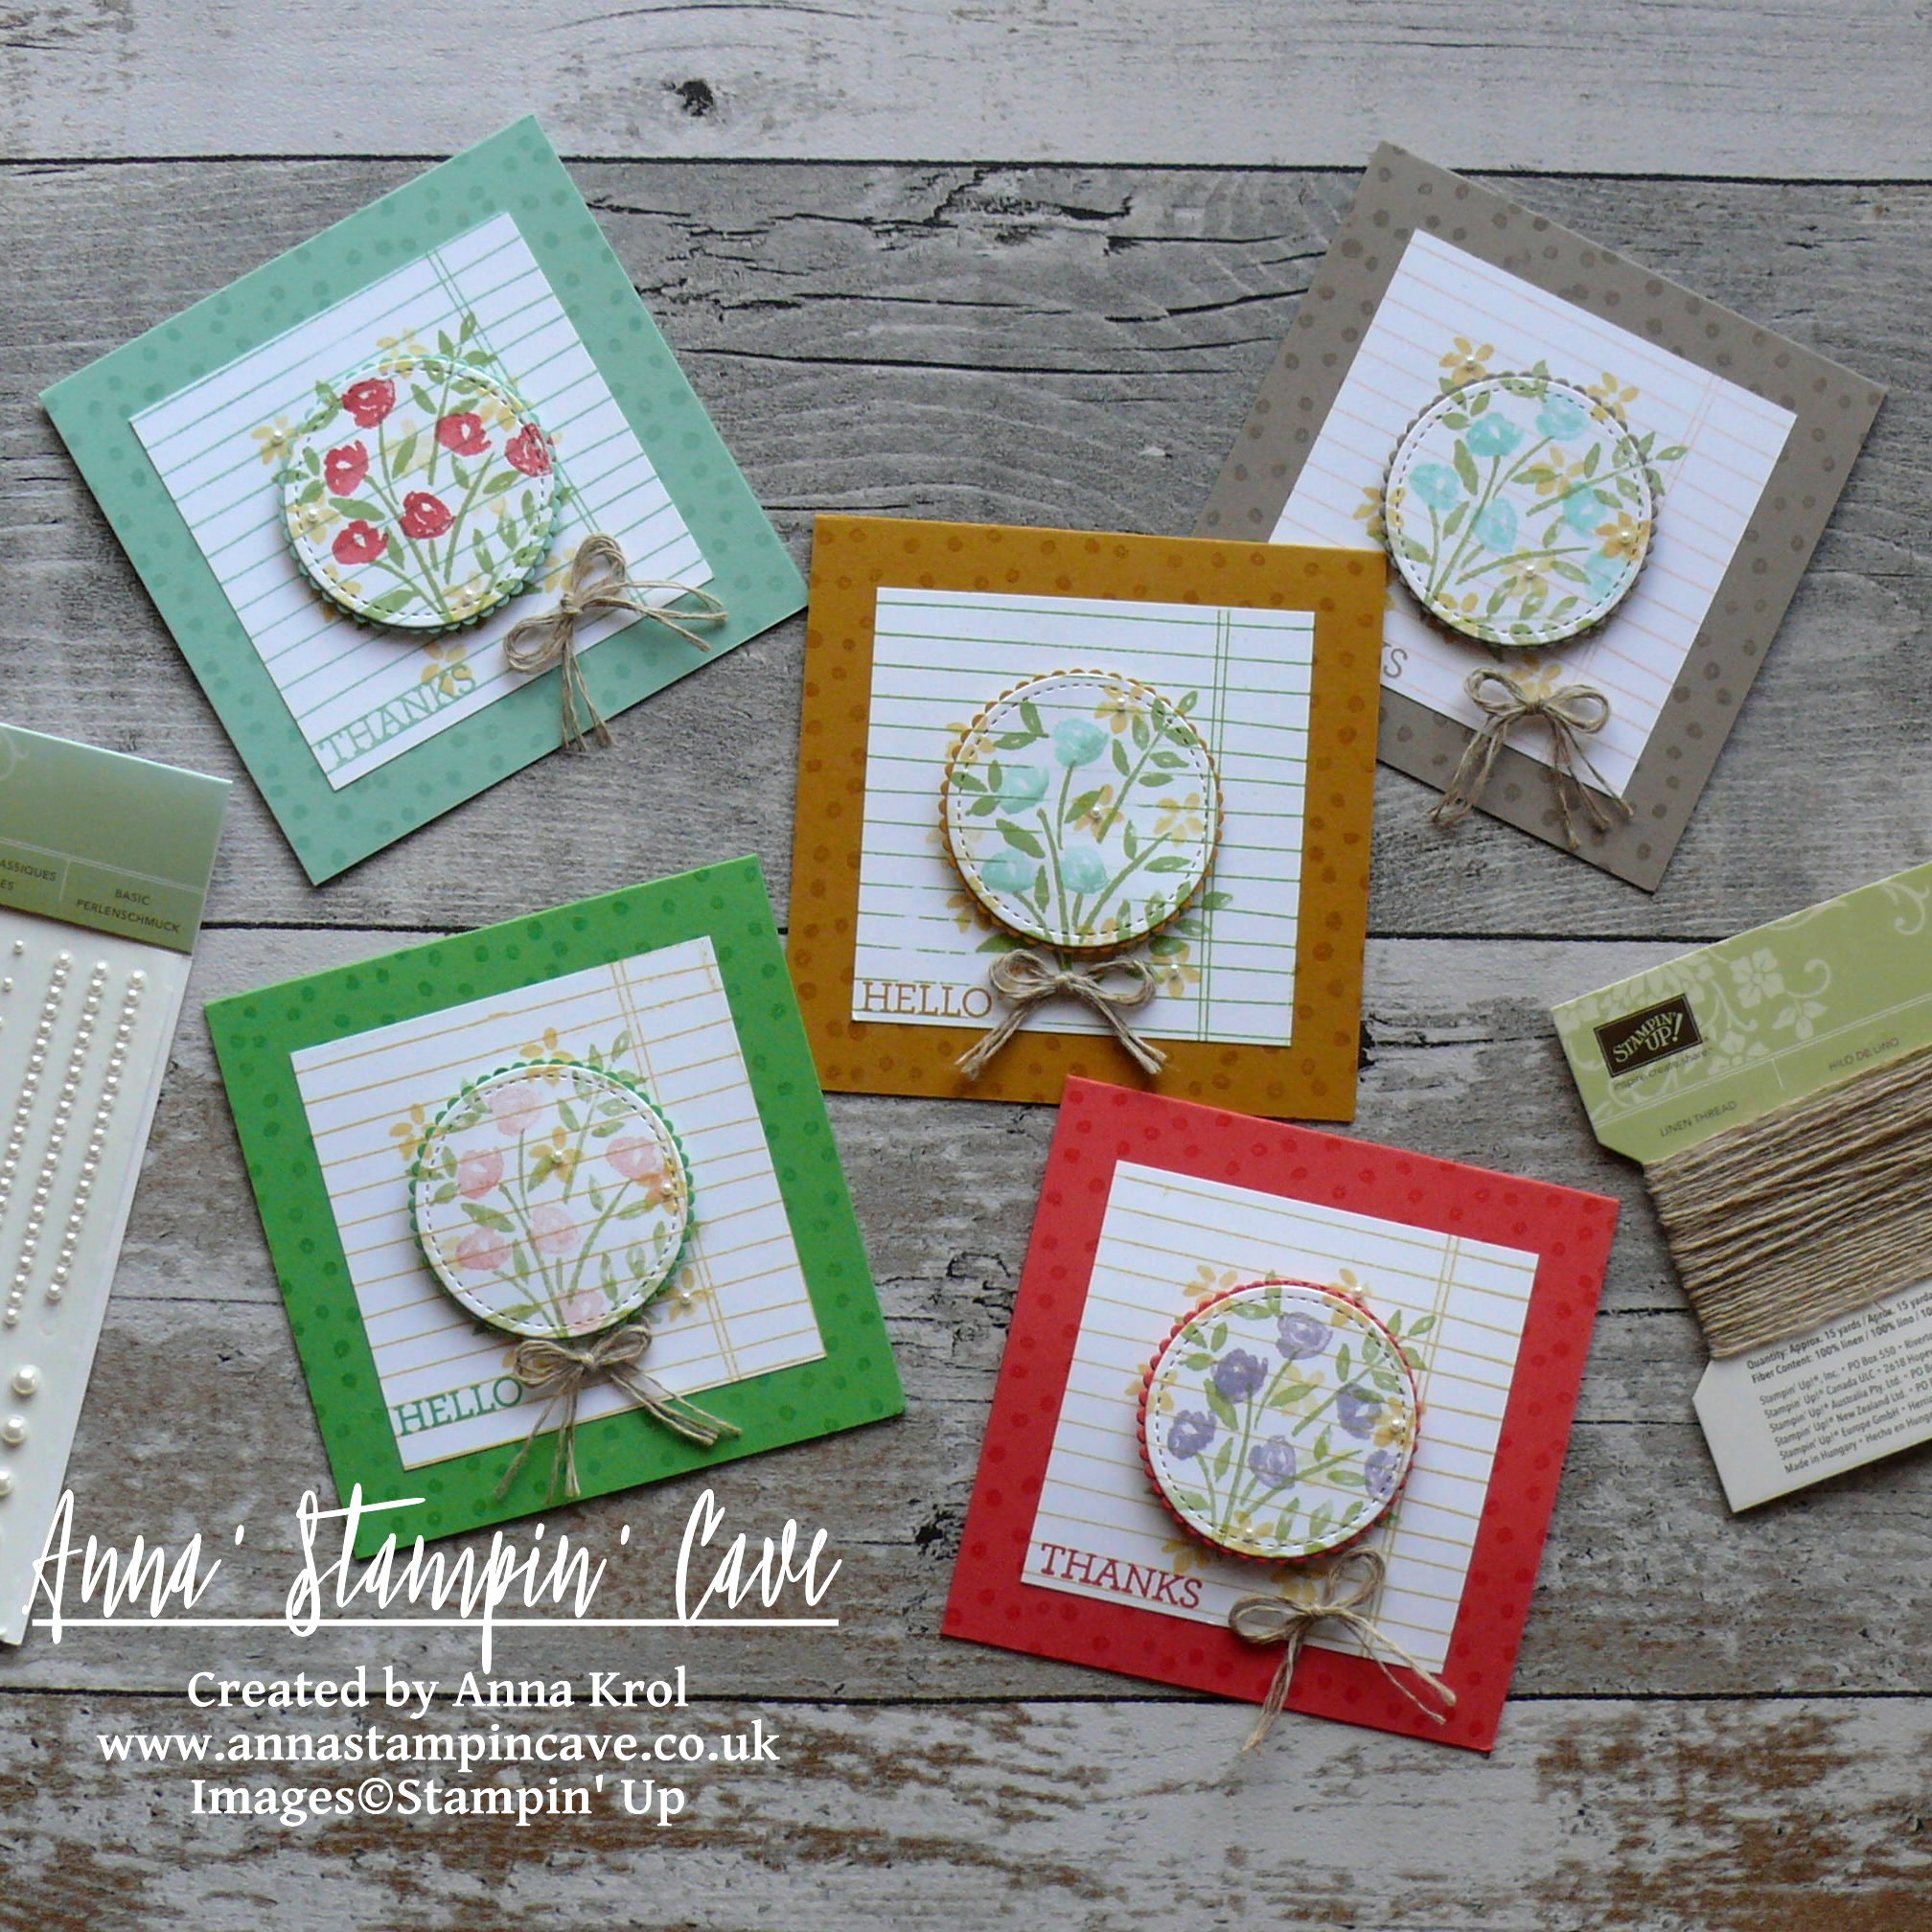 Anna' Stampin' Cave - Stampin' Up! Number Of Years Stamp Set - Hello Spring Set of Notecards 2.JPG